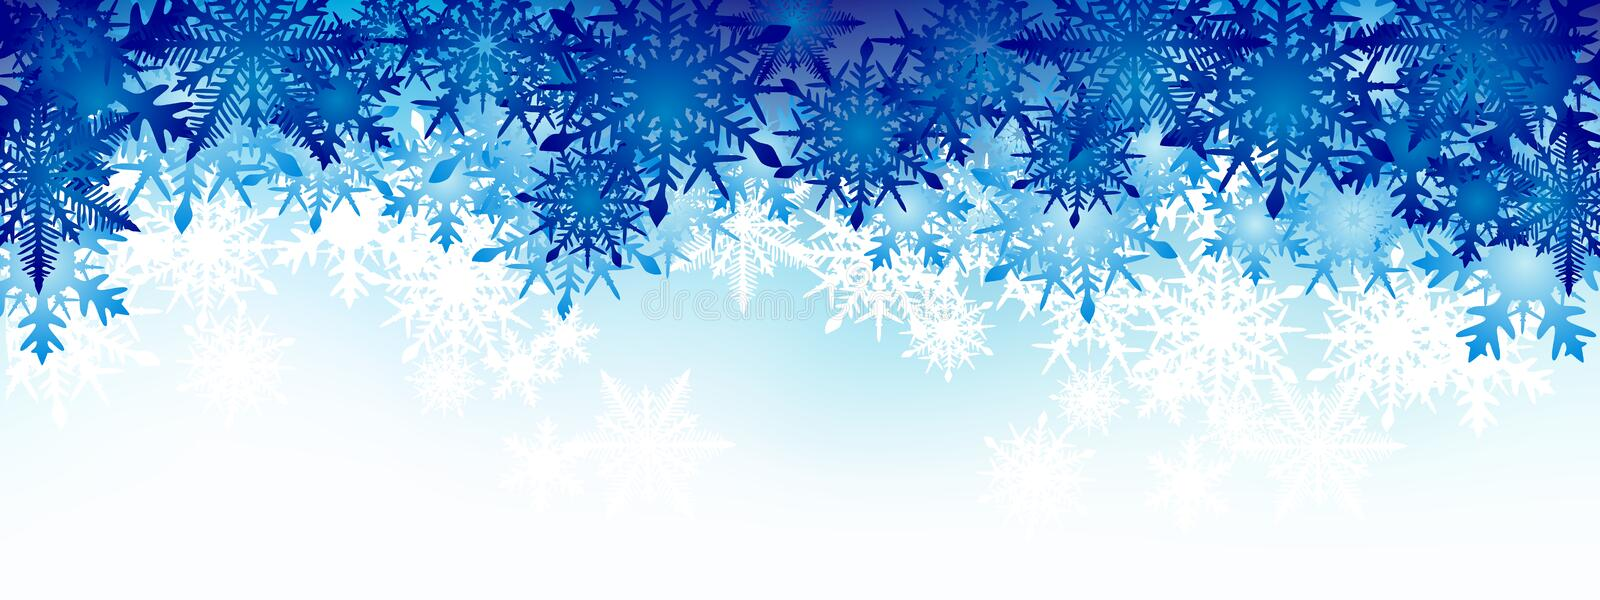 Winter background, snowflakes - vector illustration vector illustration